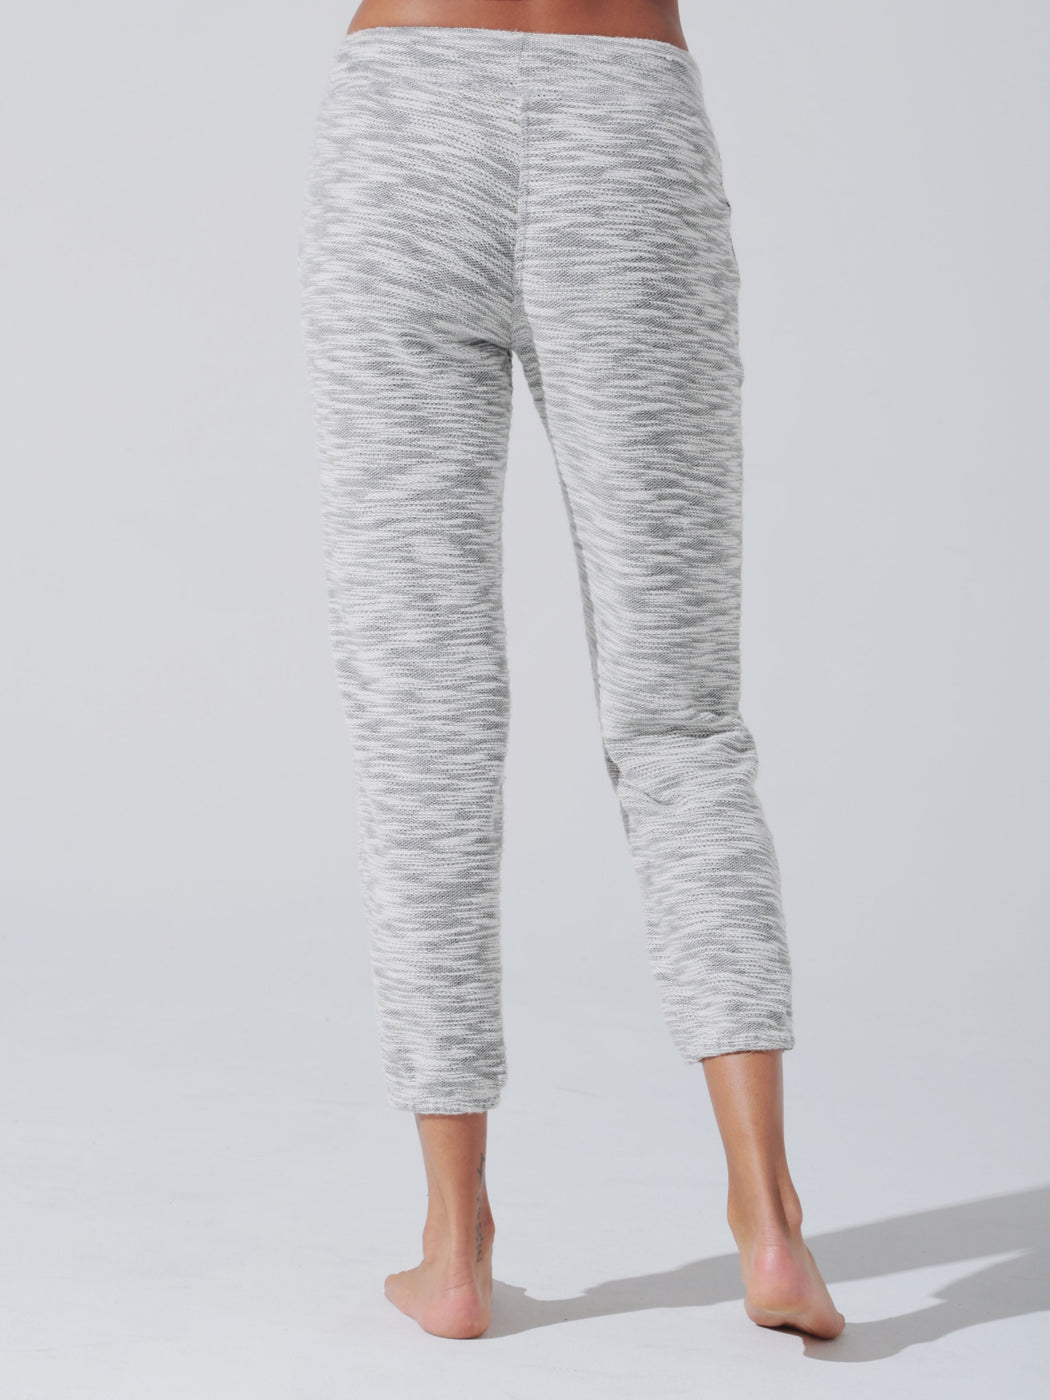 Electric & Rose Topanga Lounge Pant